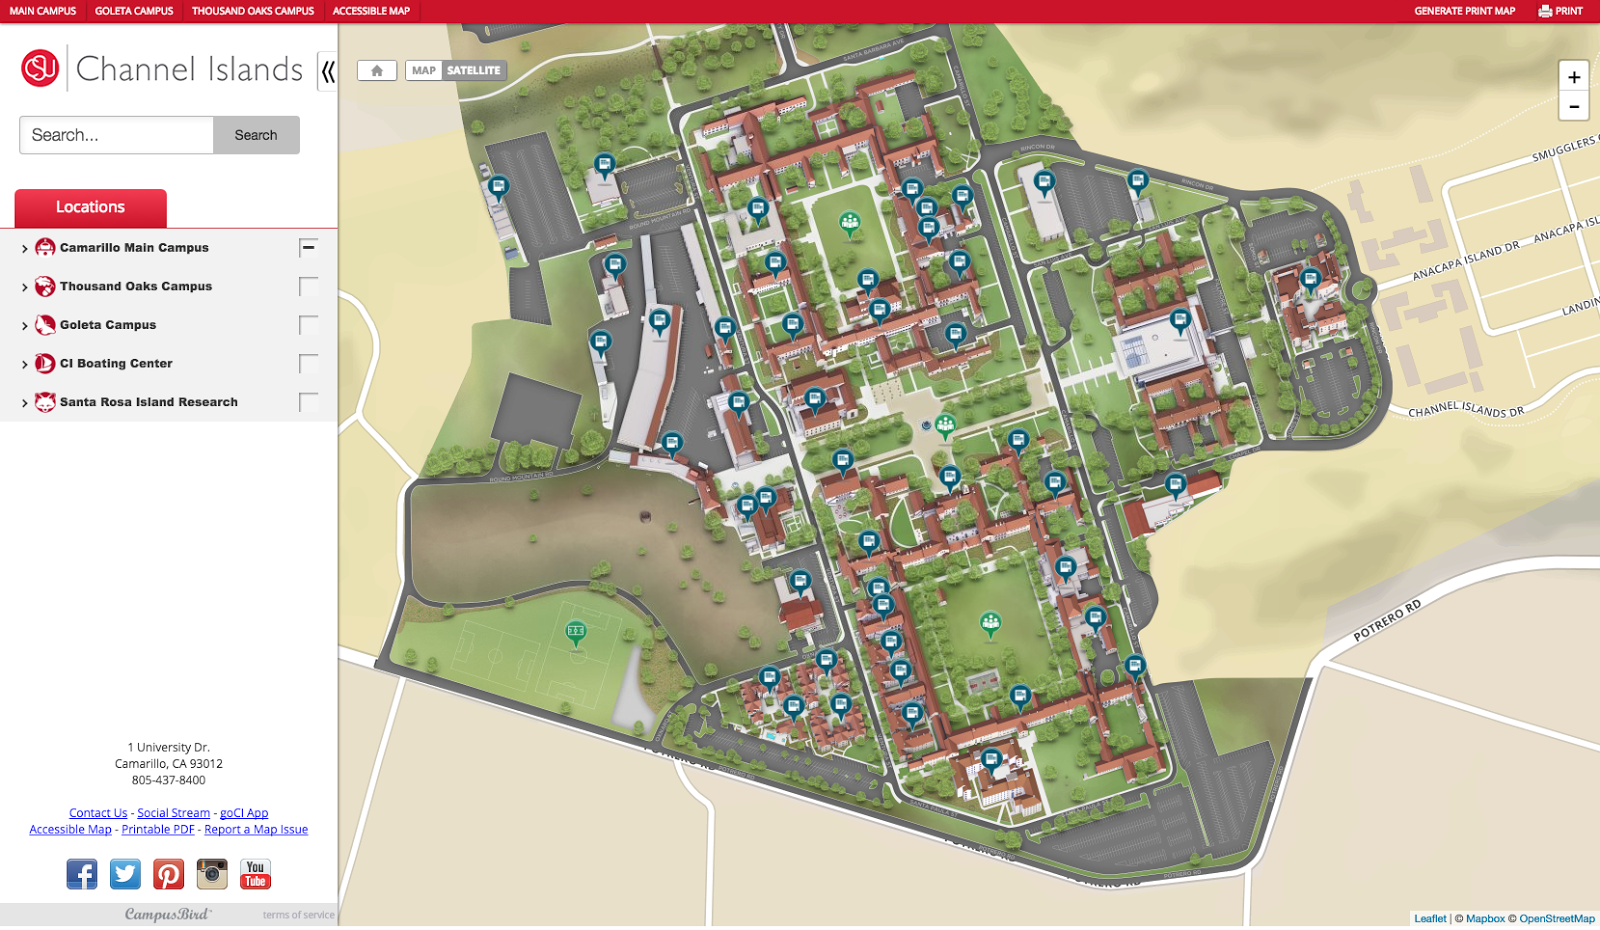 Csu Channel Islands Campus Map CSUCI Launches new interactive campus map | CI Web Services Blog